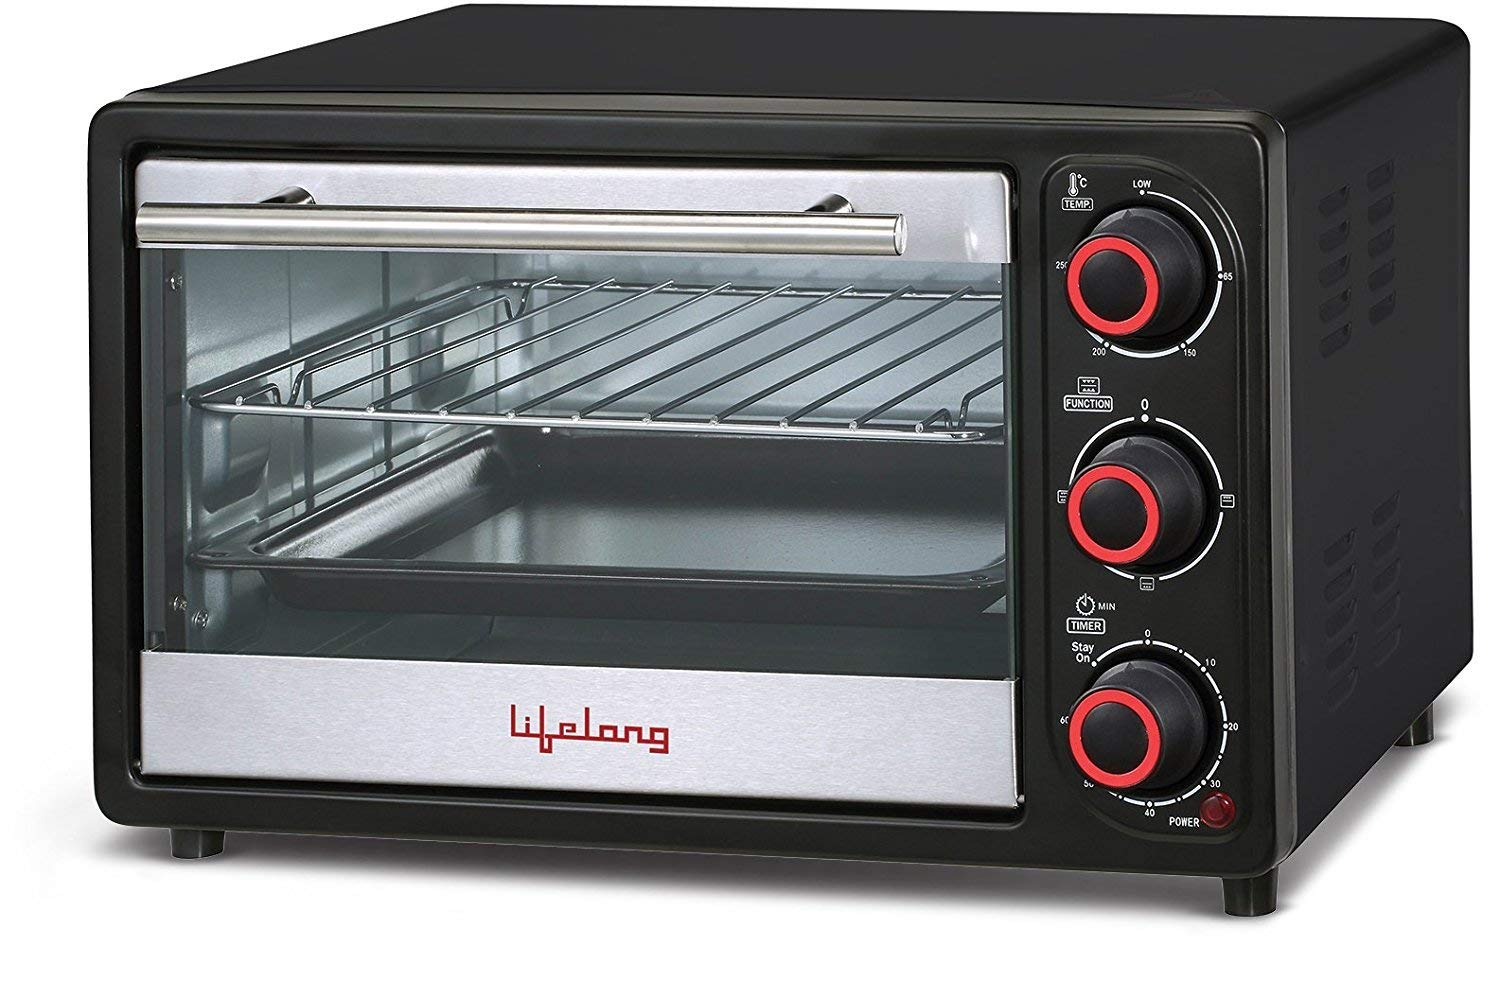 Lifelong 16L 1200-Watt Oven